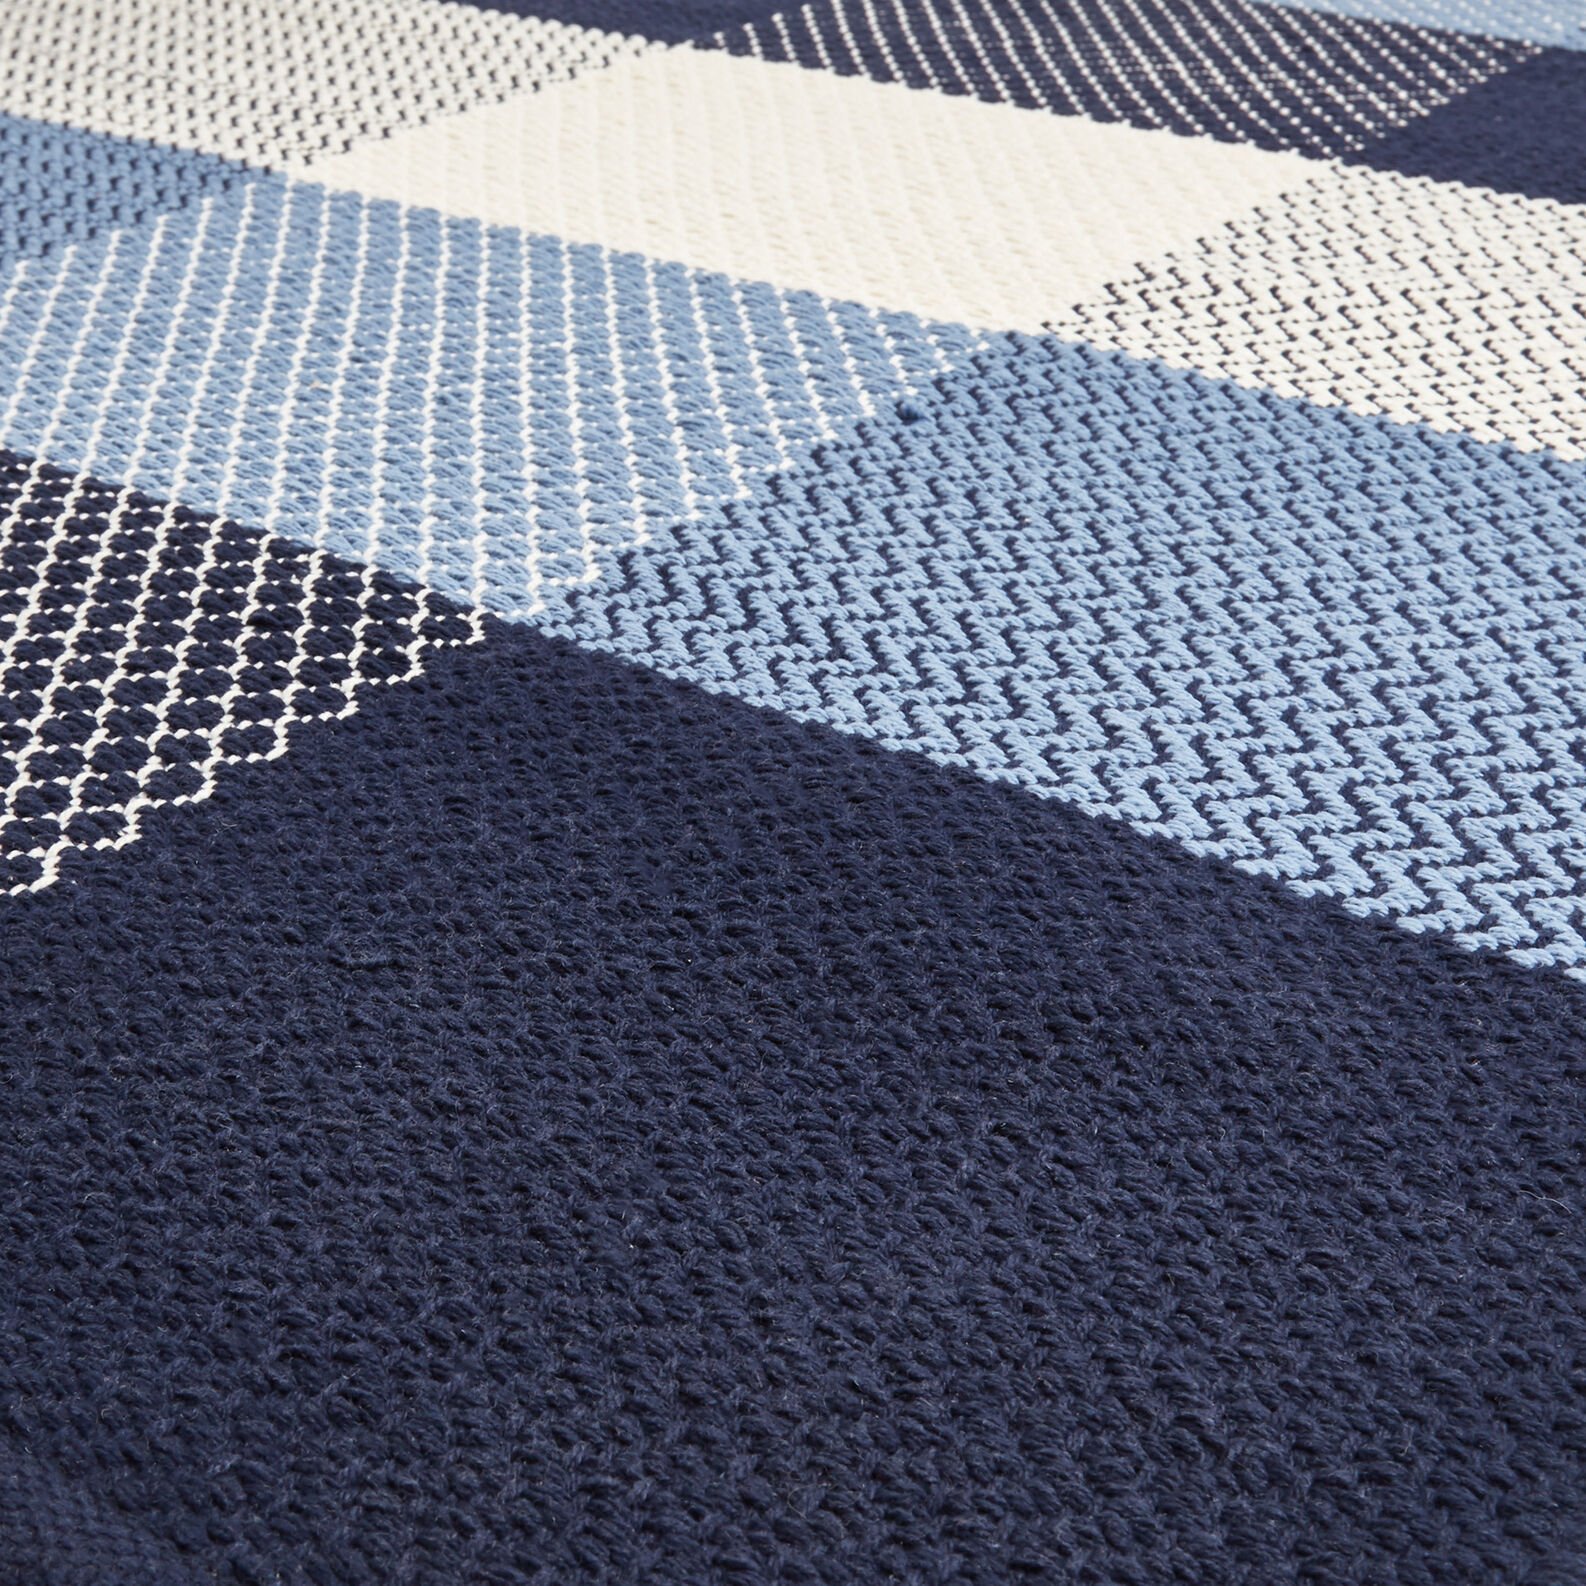 Hand-woven 100% cotton rug with check design